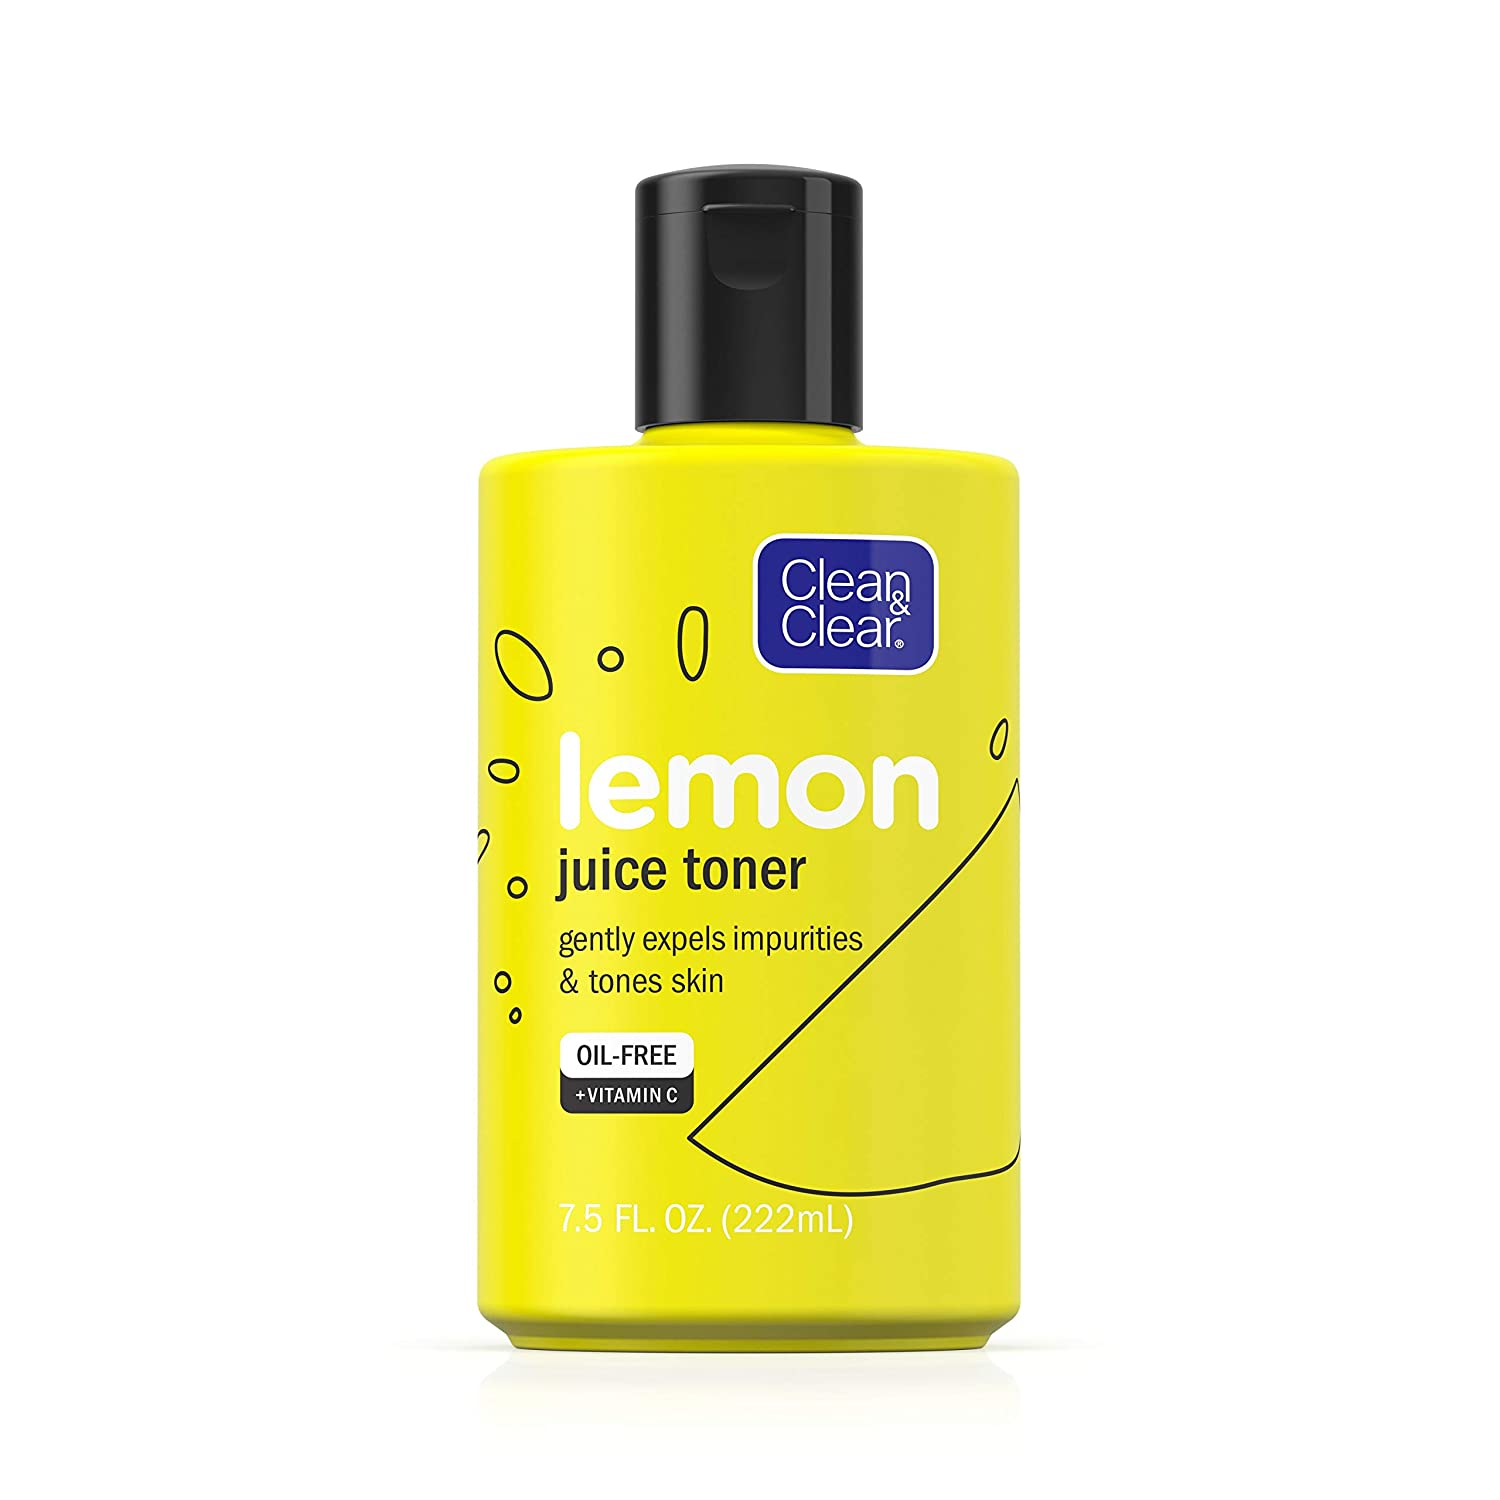 Clean & Clear Brightening Lemon Juice Facial Toner